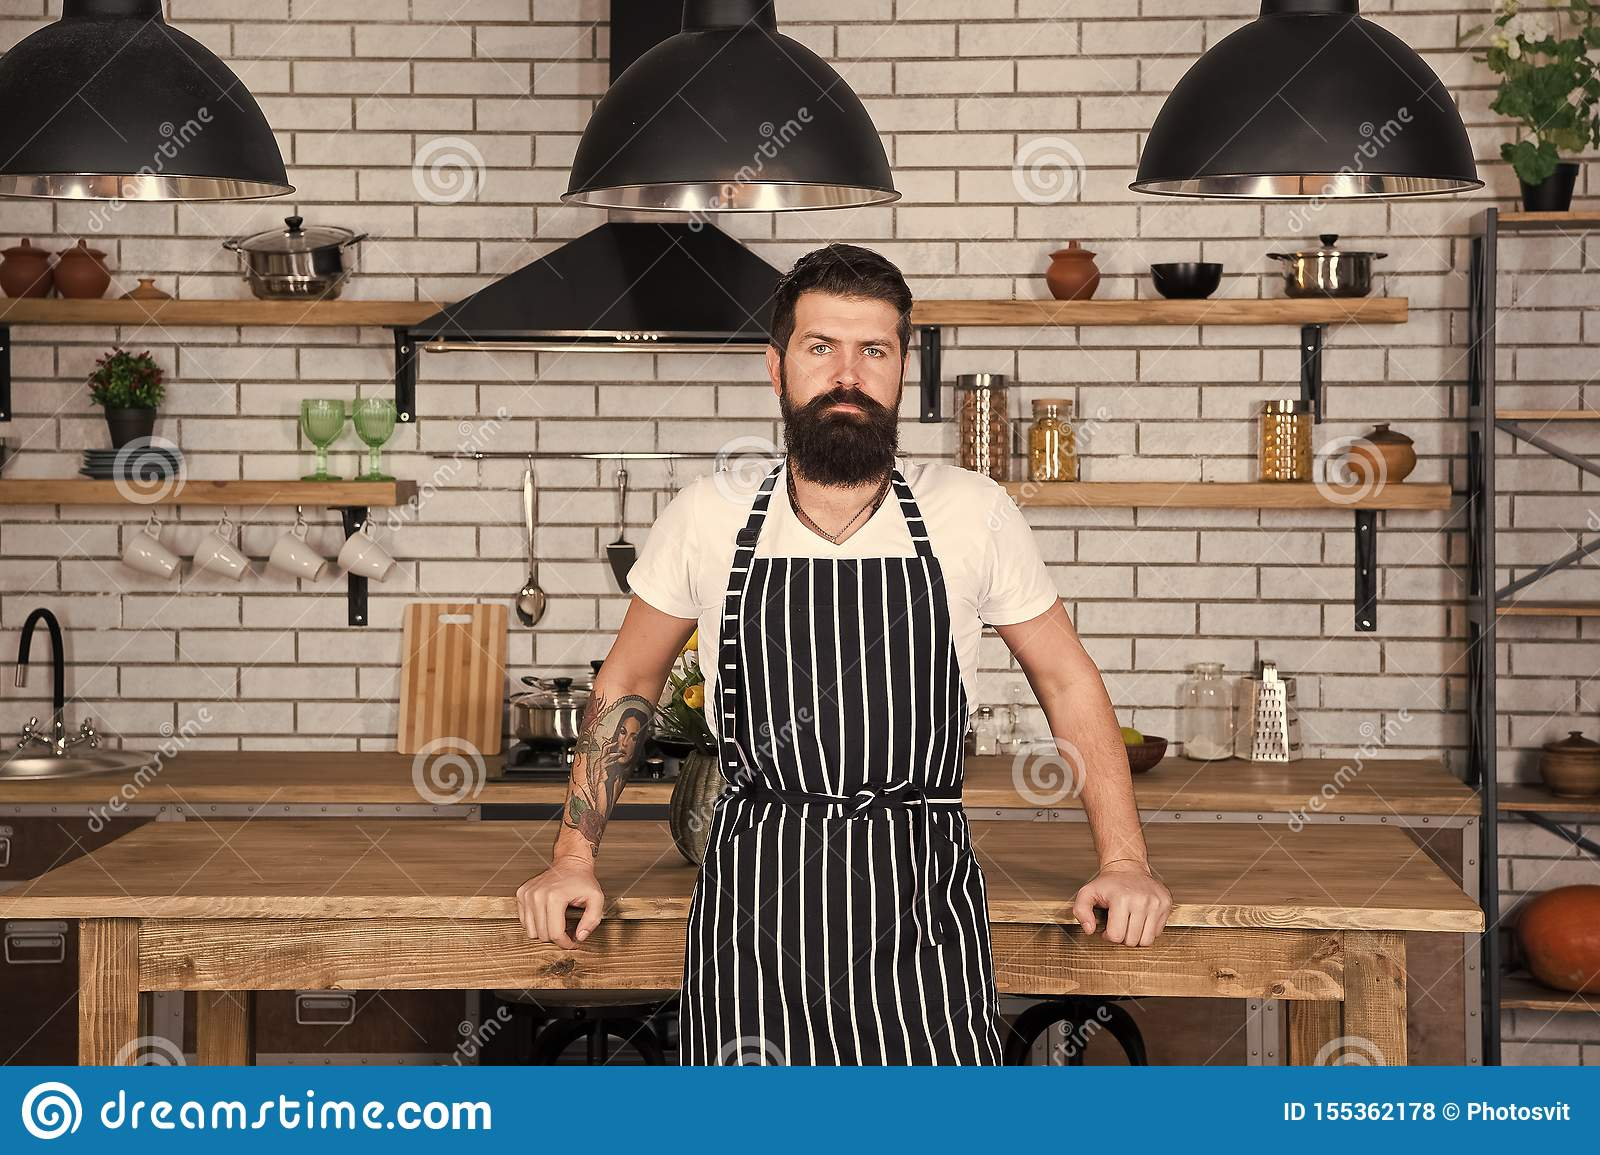 He Is A Champion In The Kitchen Hipster In Kitchen Mature